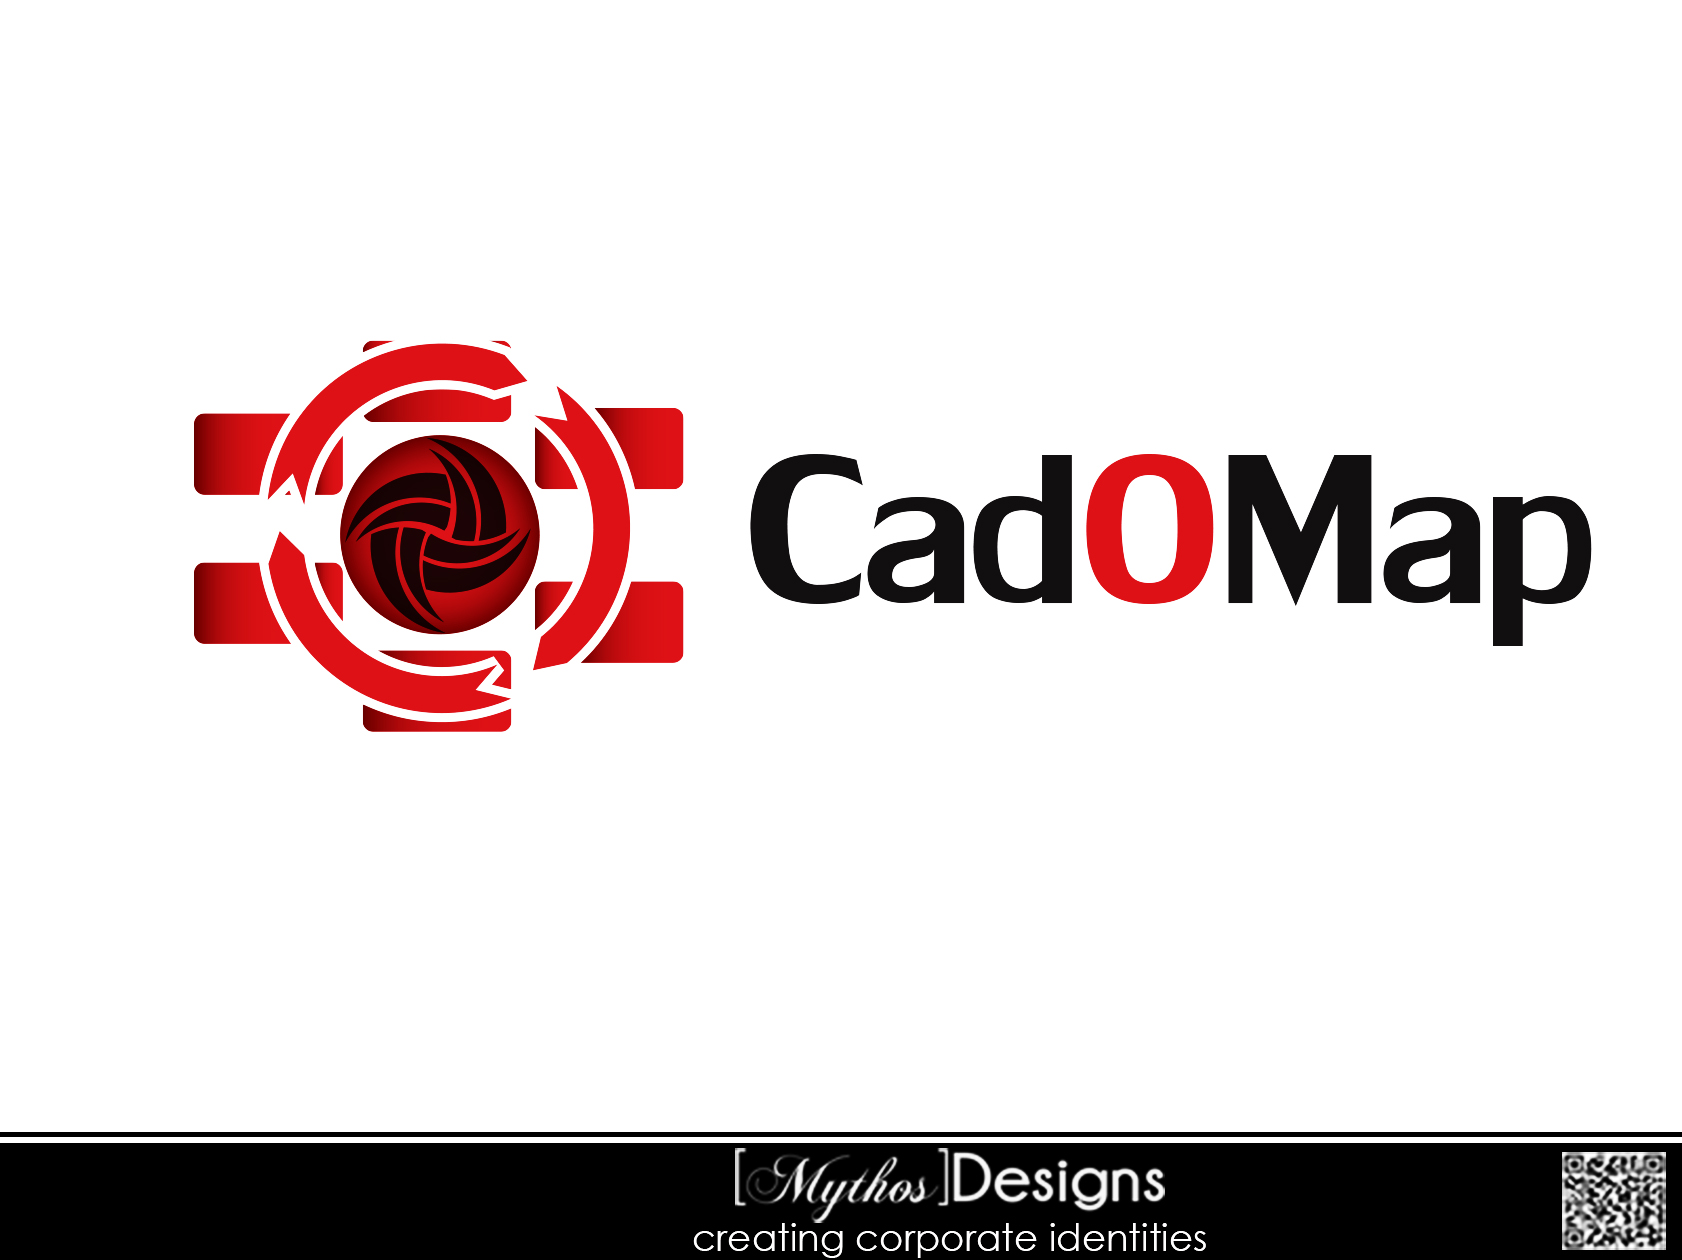 Logo Design by Mythos Designs - Entry No. 51 in the Logo Design Contest Captivating Logo Design for CadOMap software product.